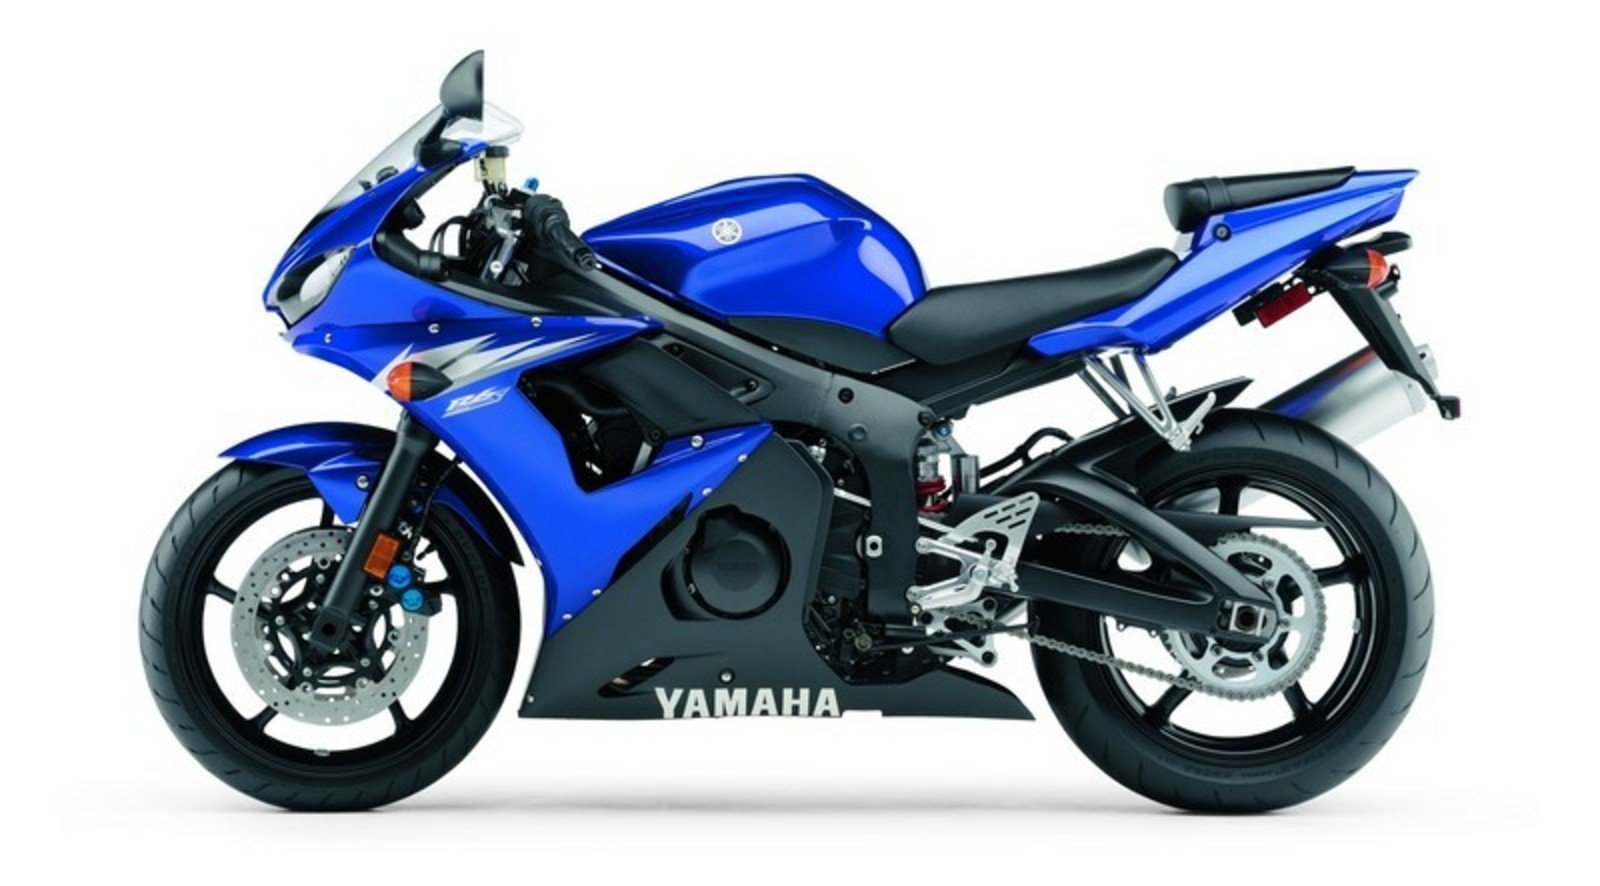 2006 yamaha yzf r6s picture 45958 motorcycle review for 2006 yamaha yzf r6